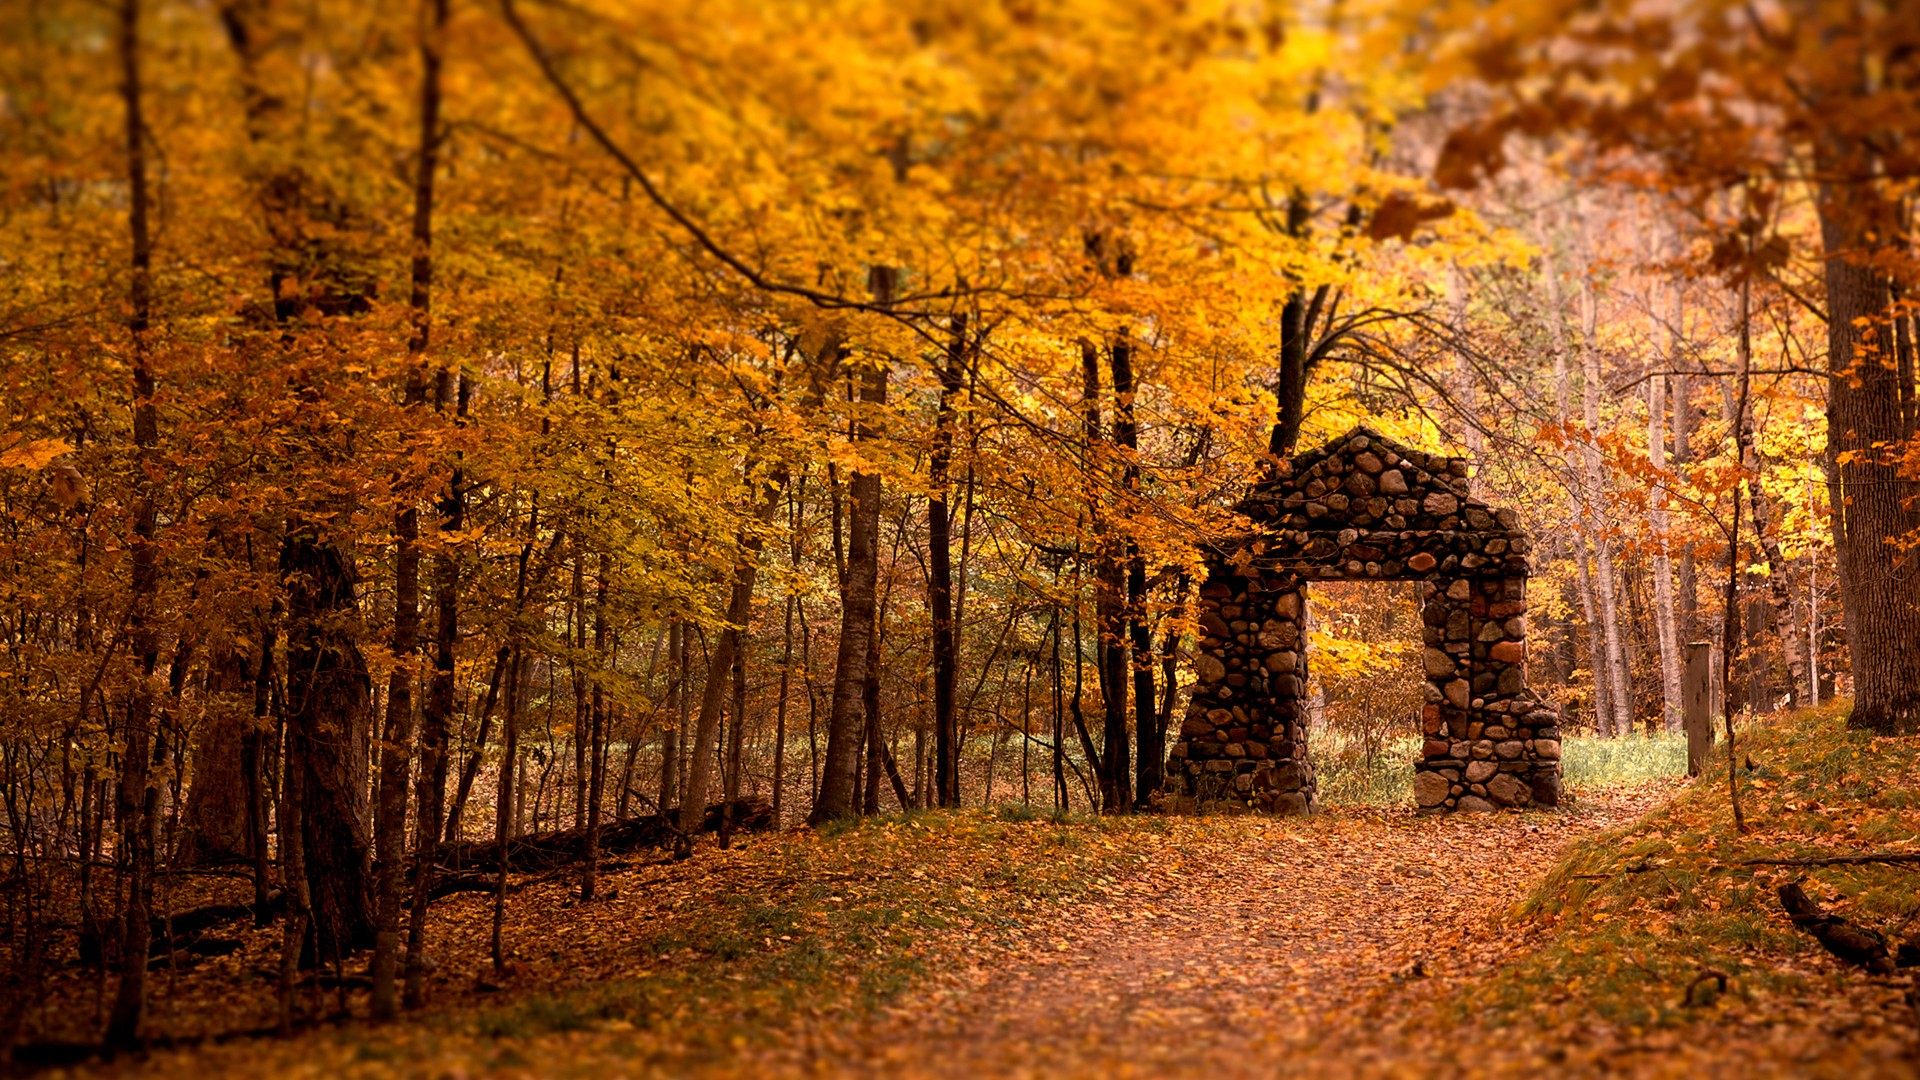 Forests: Stone Gate Autumn Beauty Forest Orange Photography Nature ...